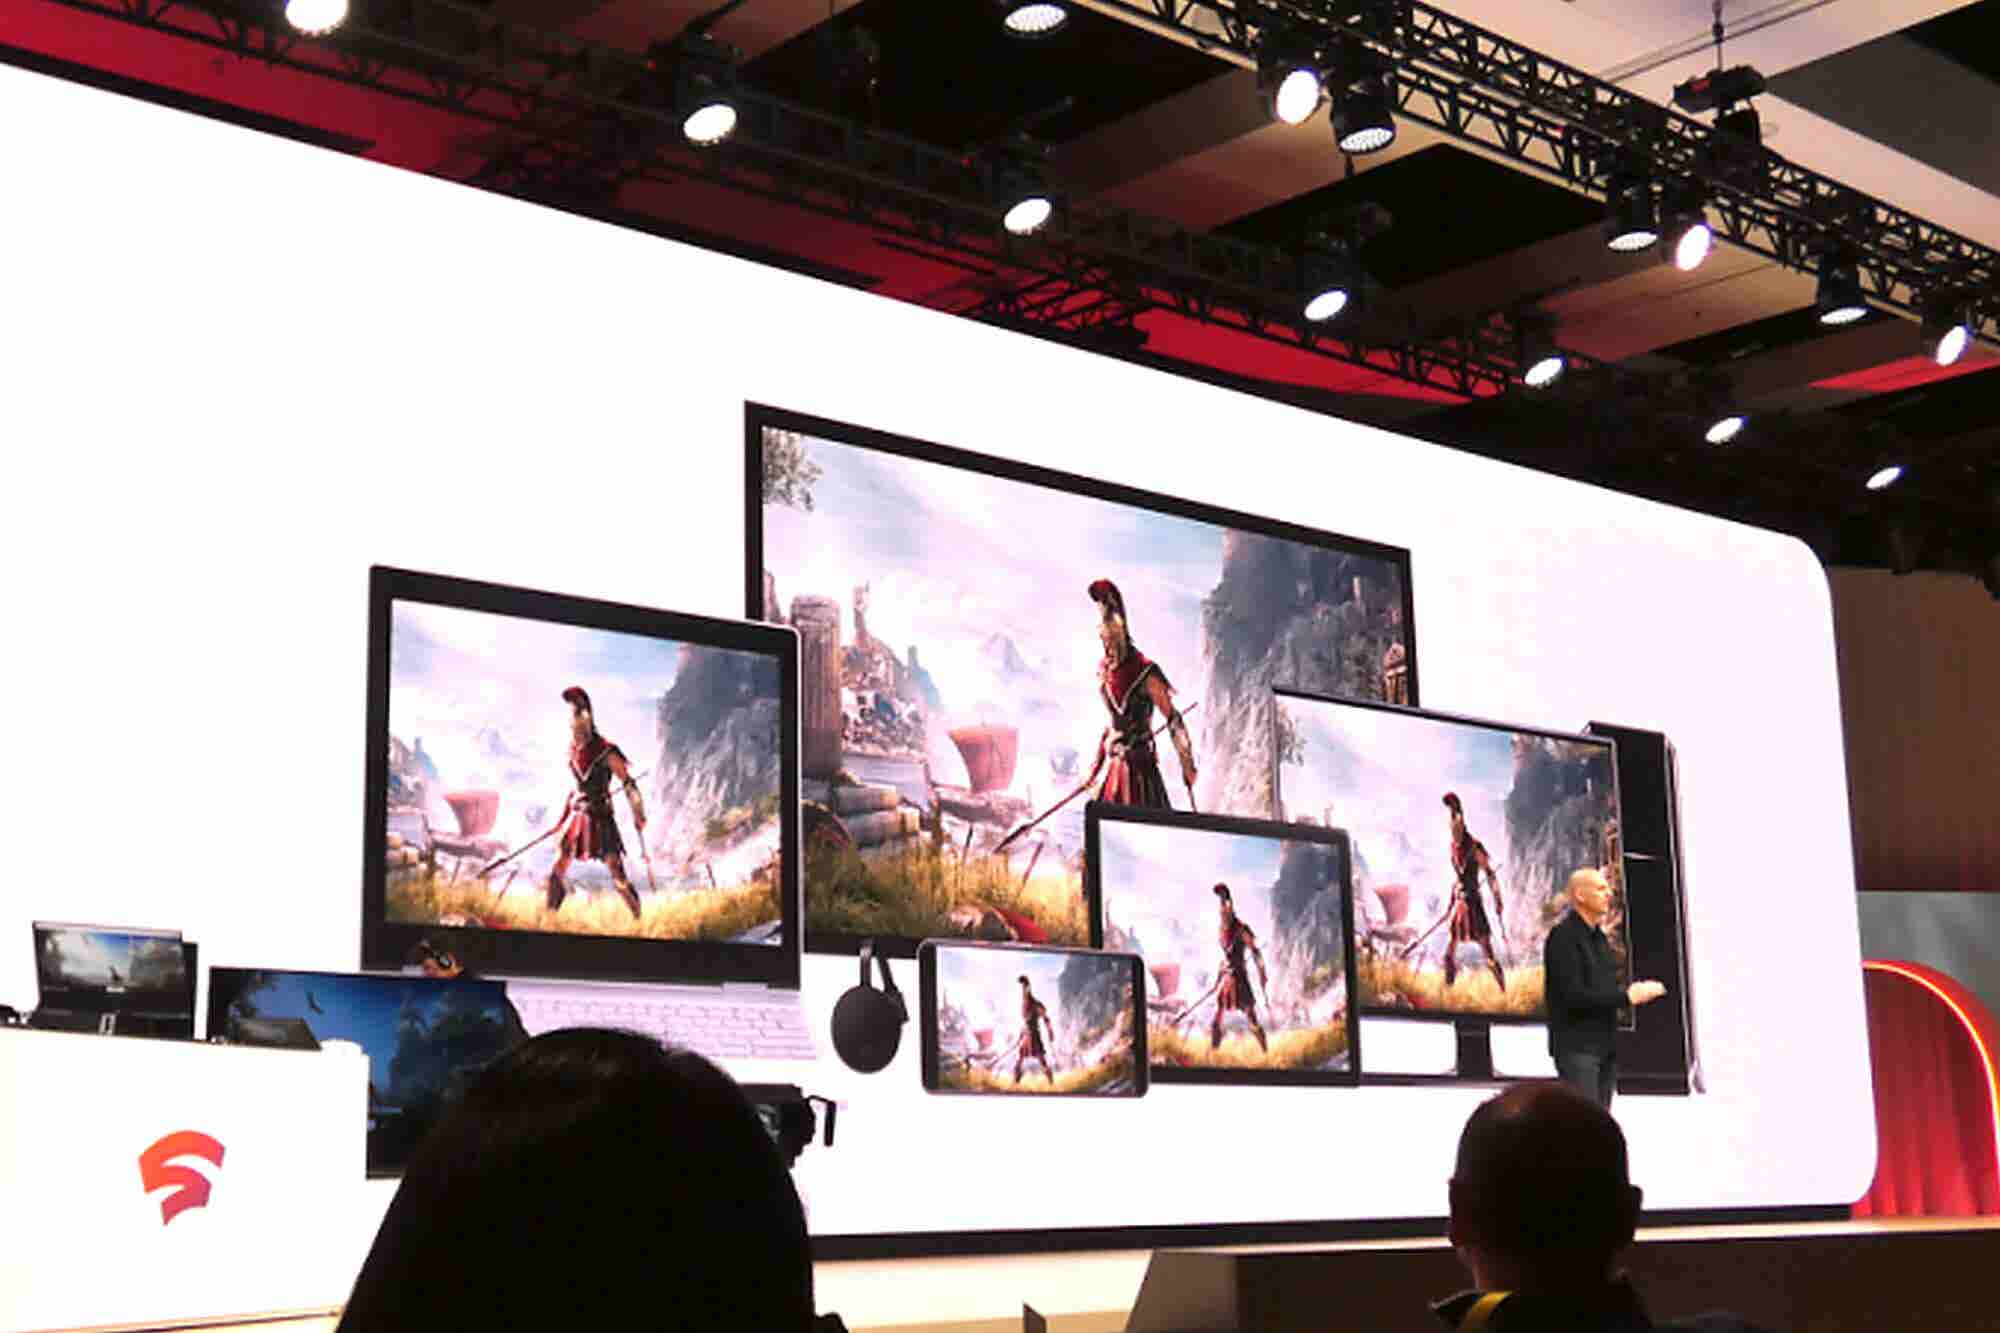 Stadia, Google's Cloud Gaming Service, Launches Later This Year